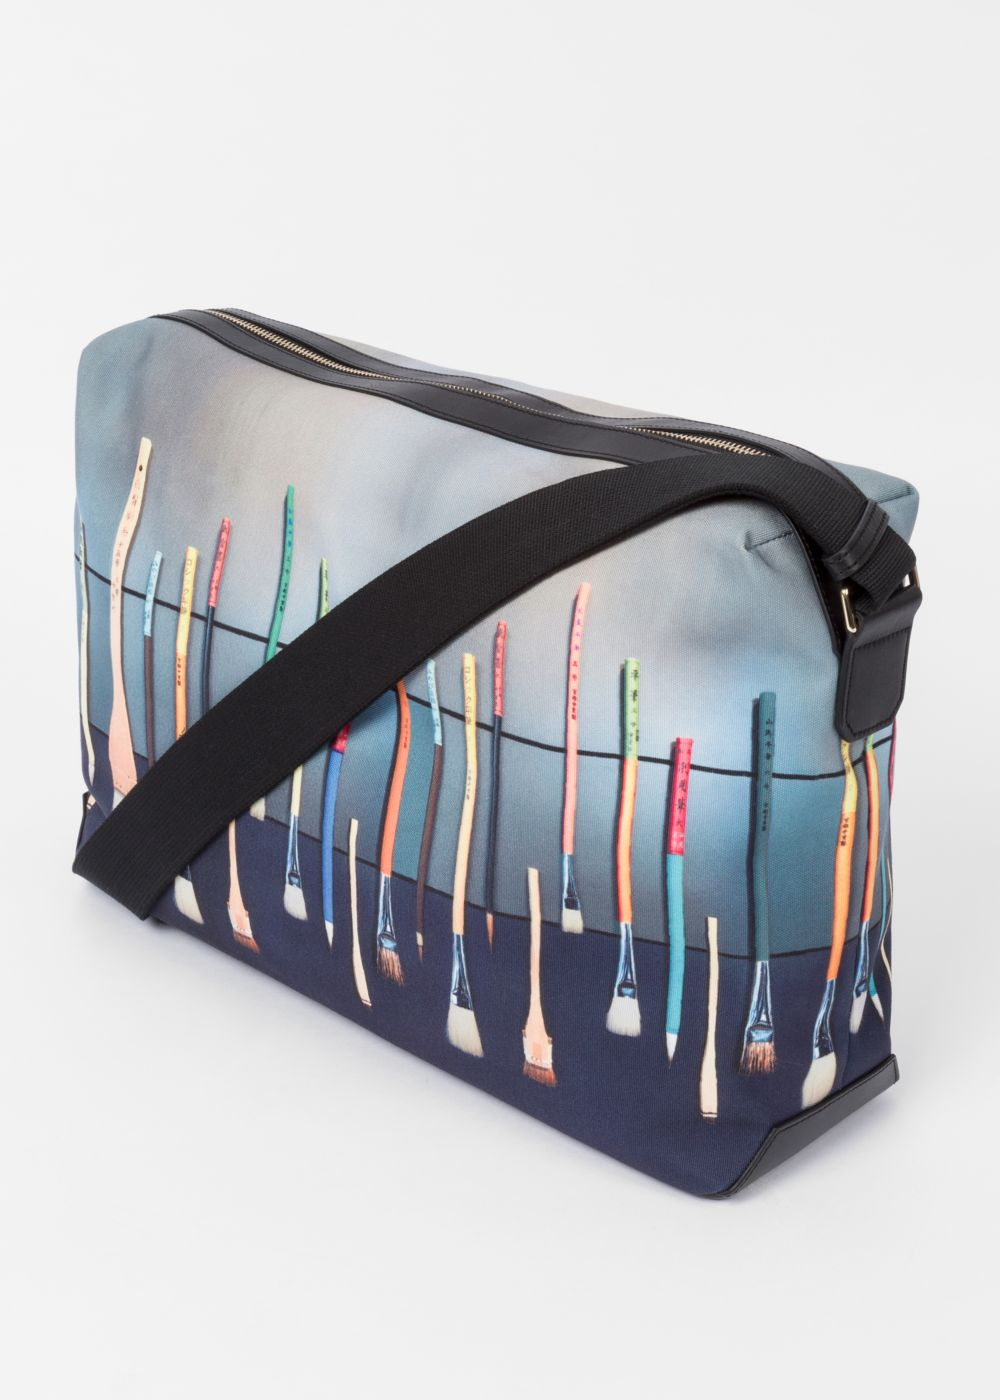 Paul Smith Men's Canvas 'Paint Brush' Print Messenger Bag